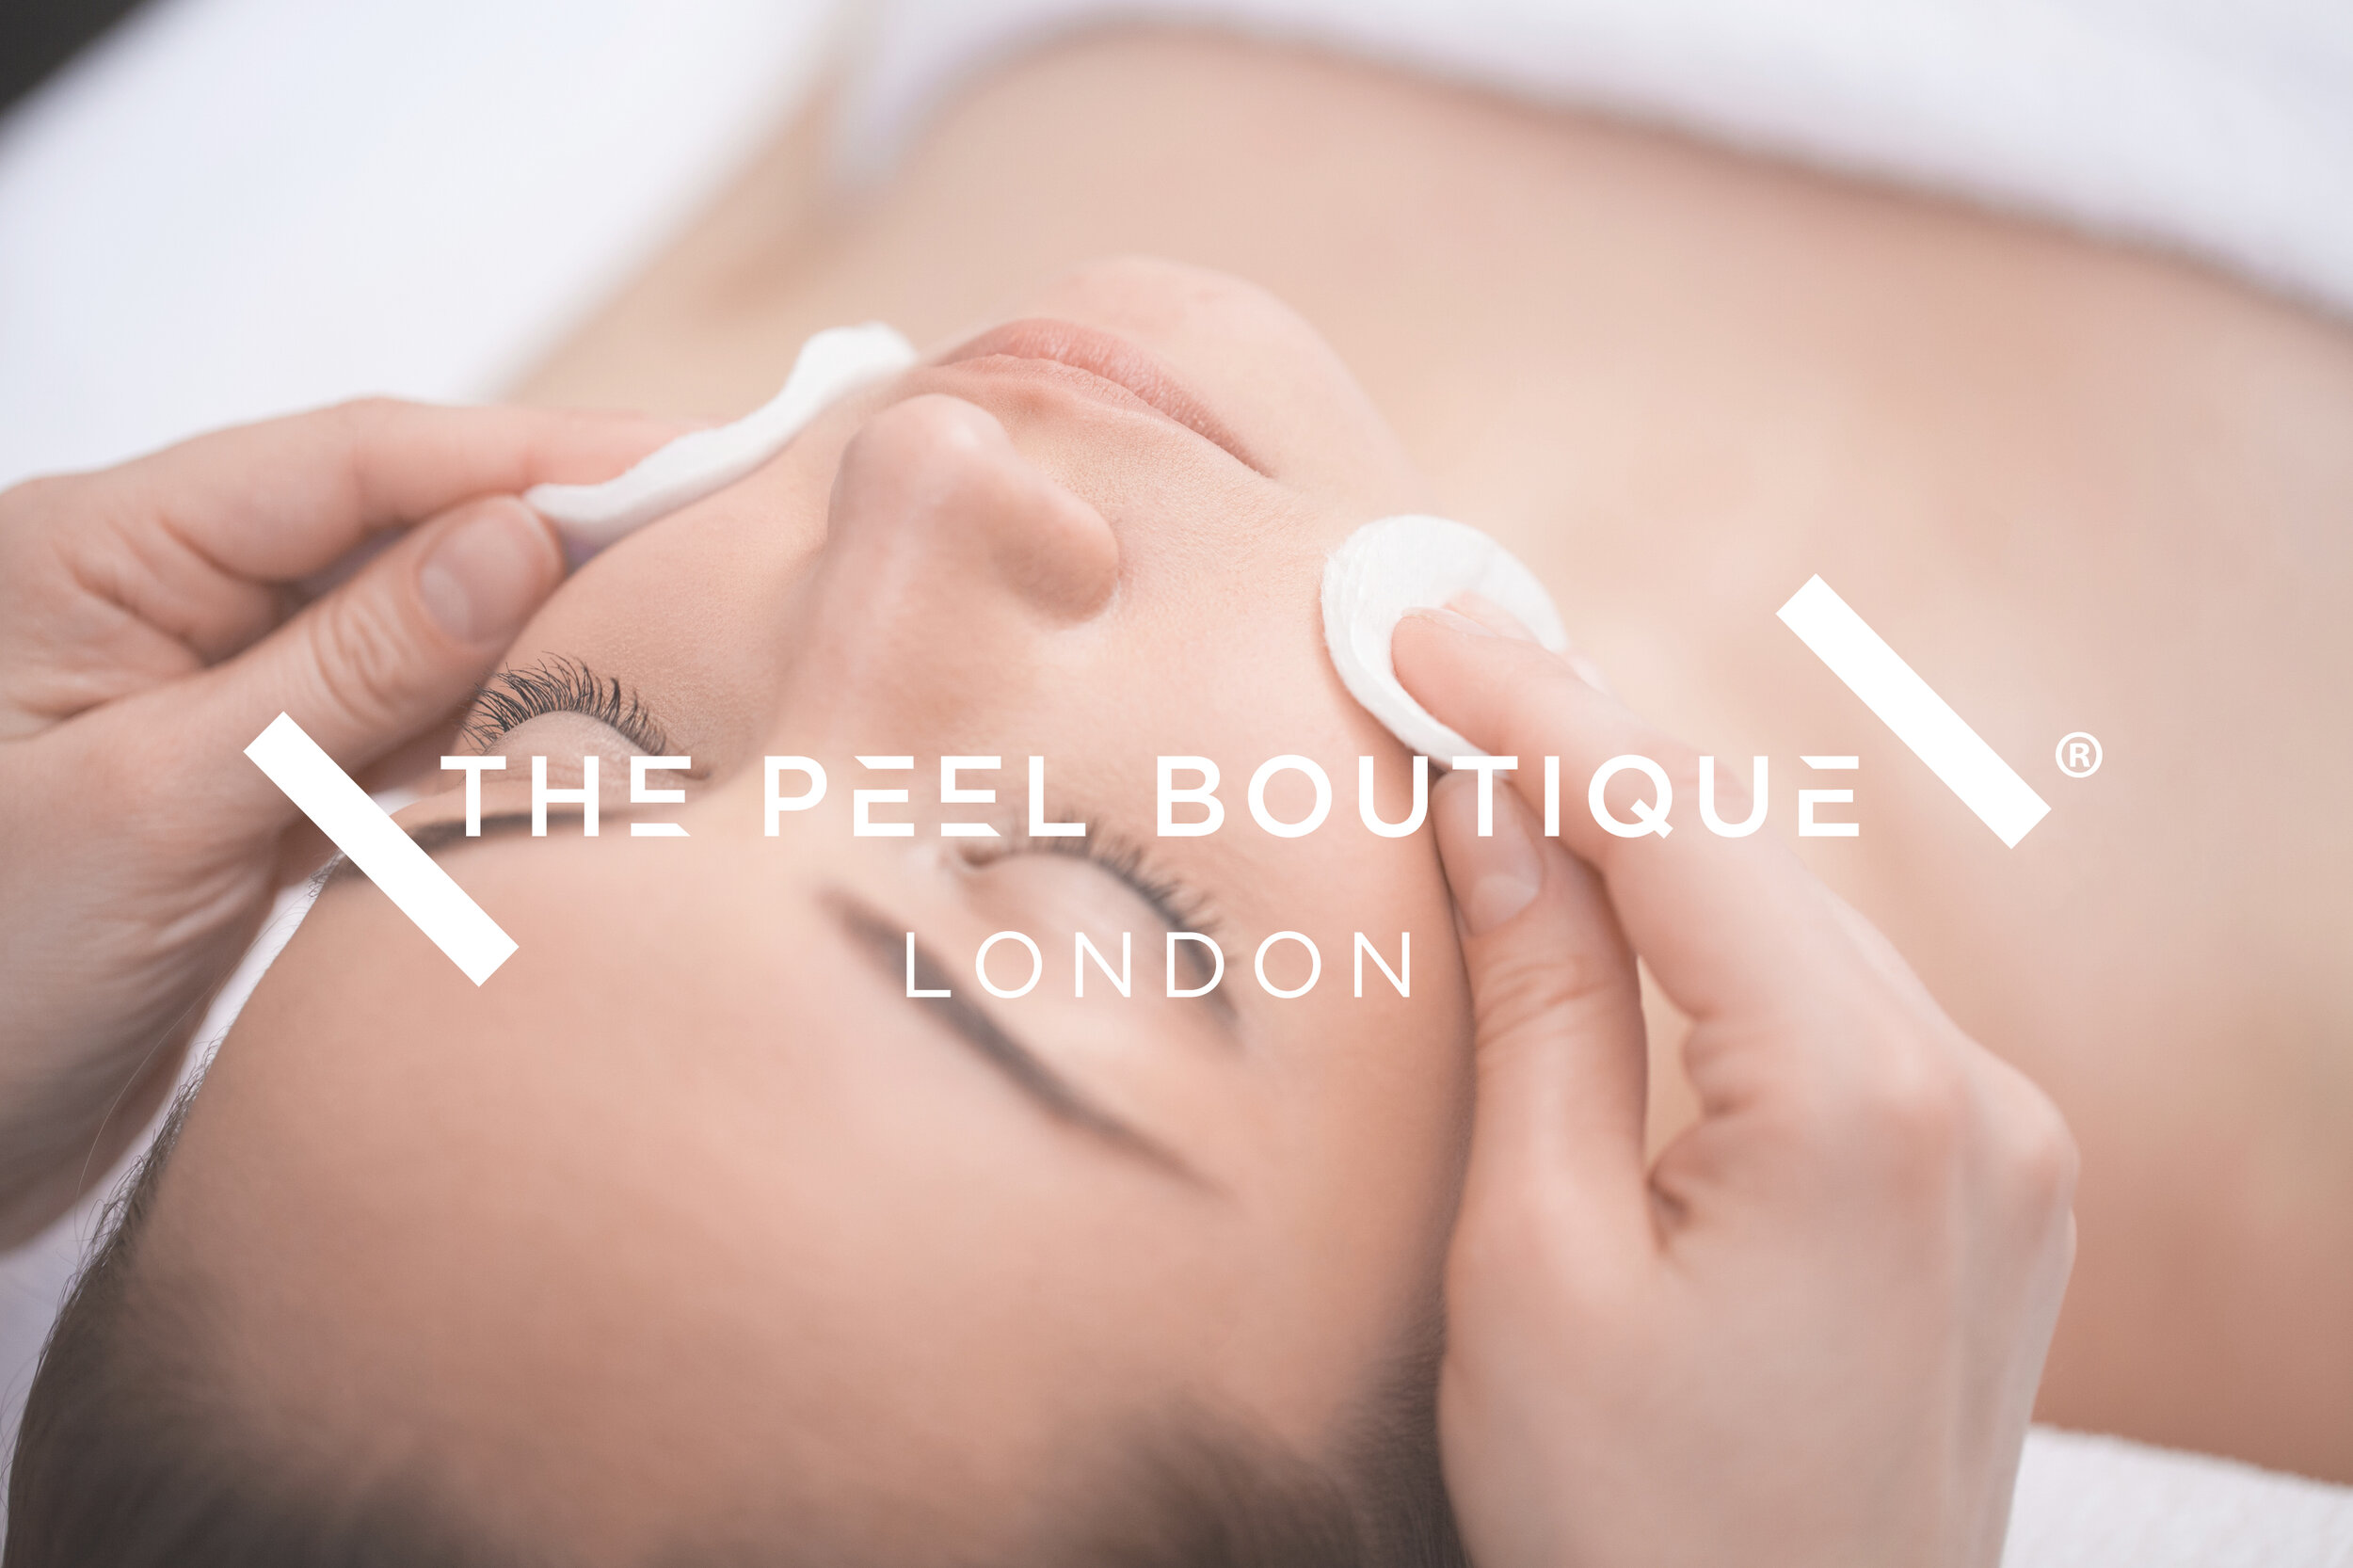 The Peel Boutique